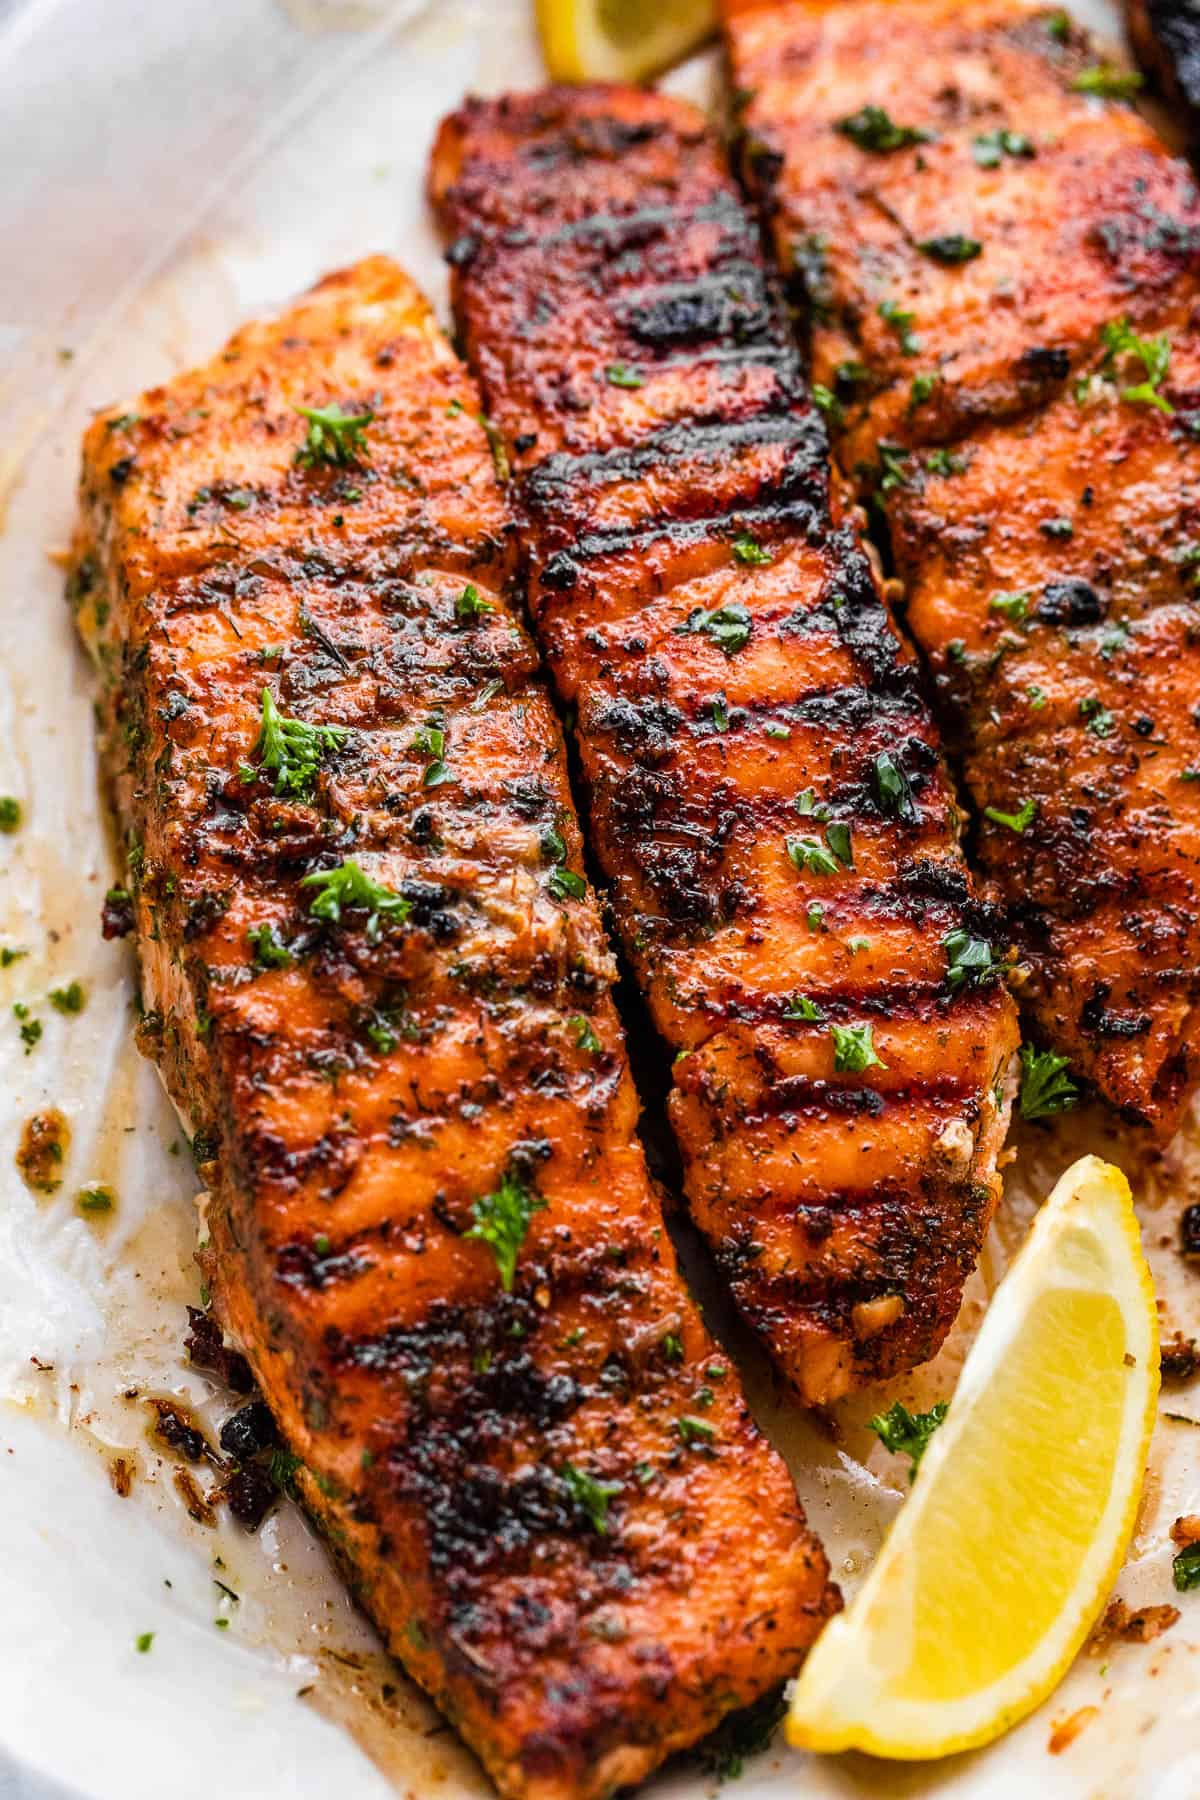 grilled salmon fillets on a plate with lemon wedges